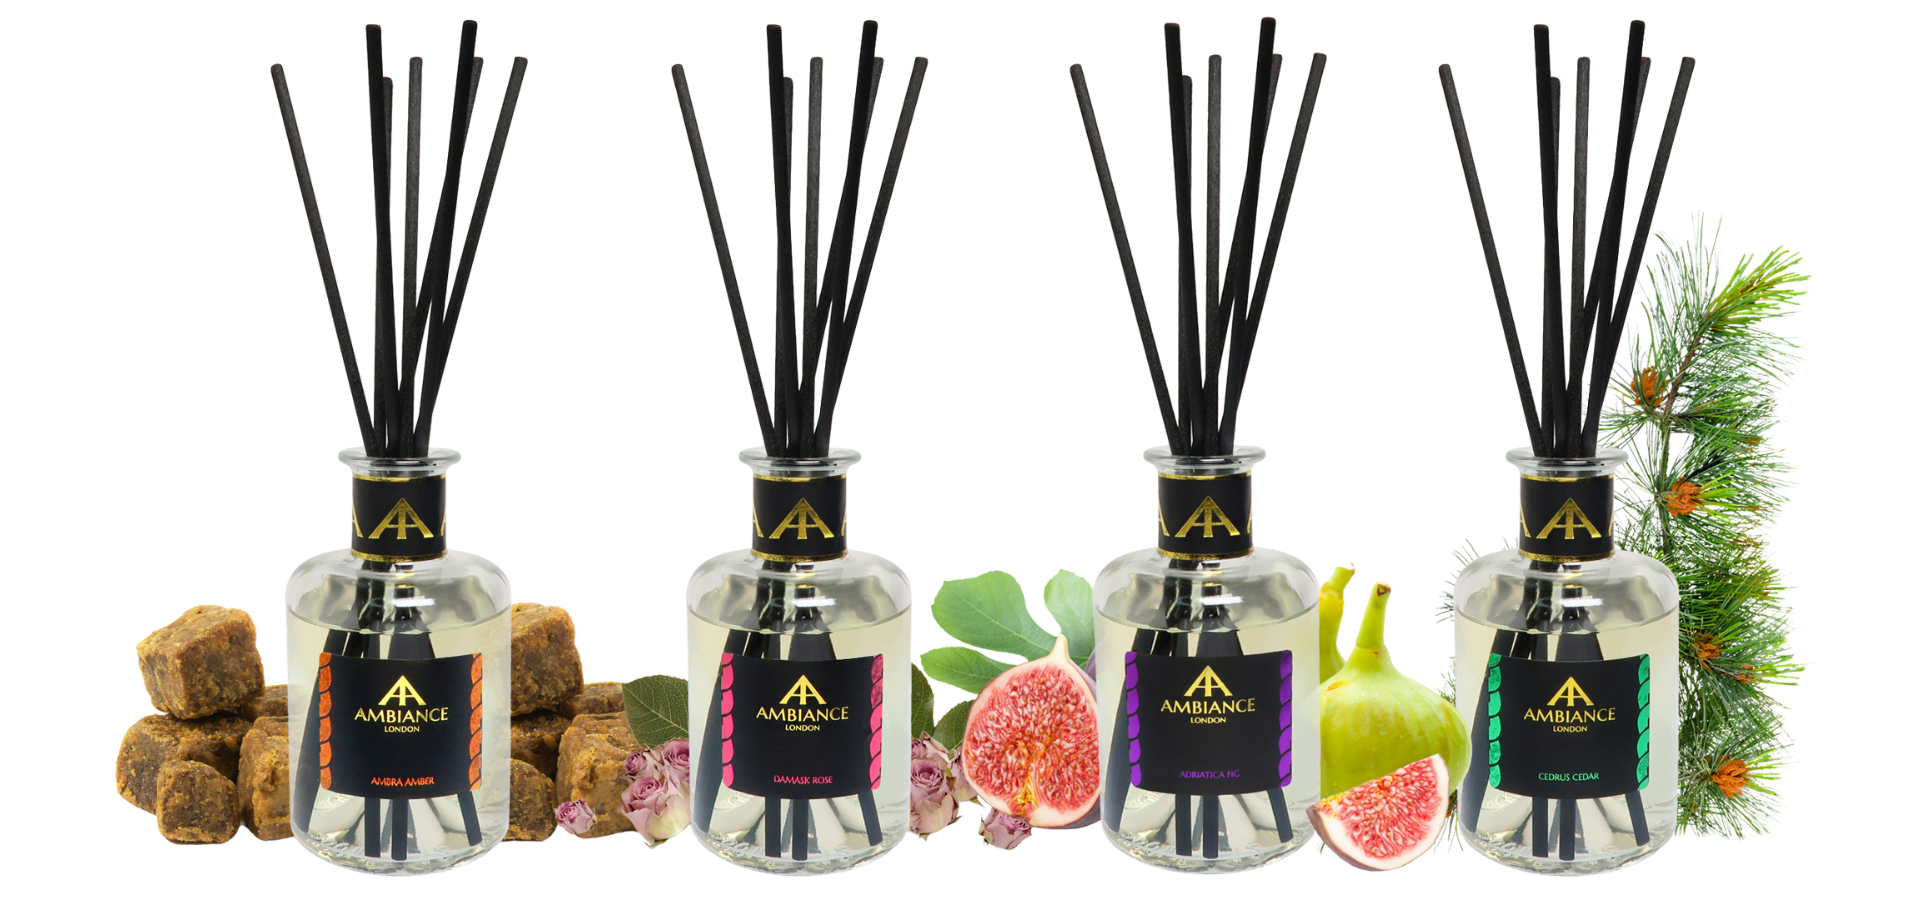 home fragrance diffusers - ancienne ambiance - luxury scents for the home